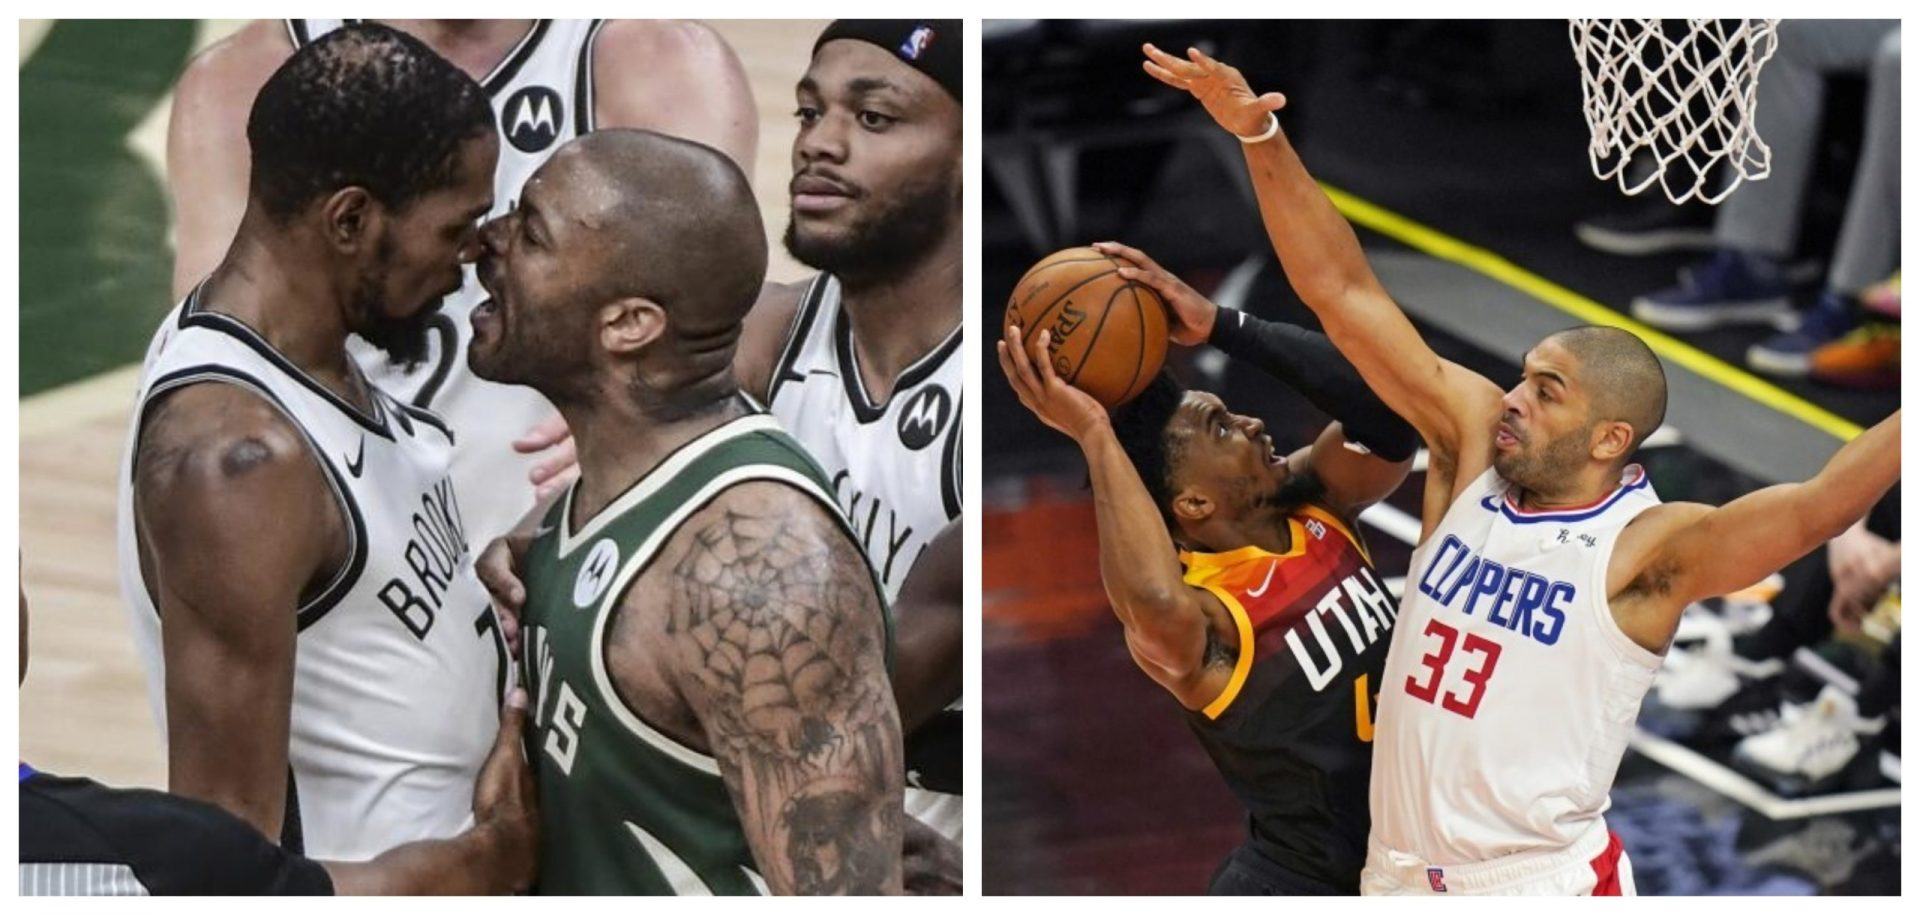 NBA Playoffs Day 20 Review: Bucks win tight affair against Nets; Jazz extend lead over Clippers - THE SPORTS ROOM